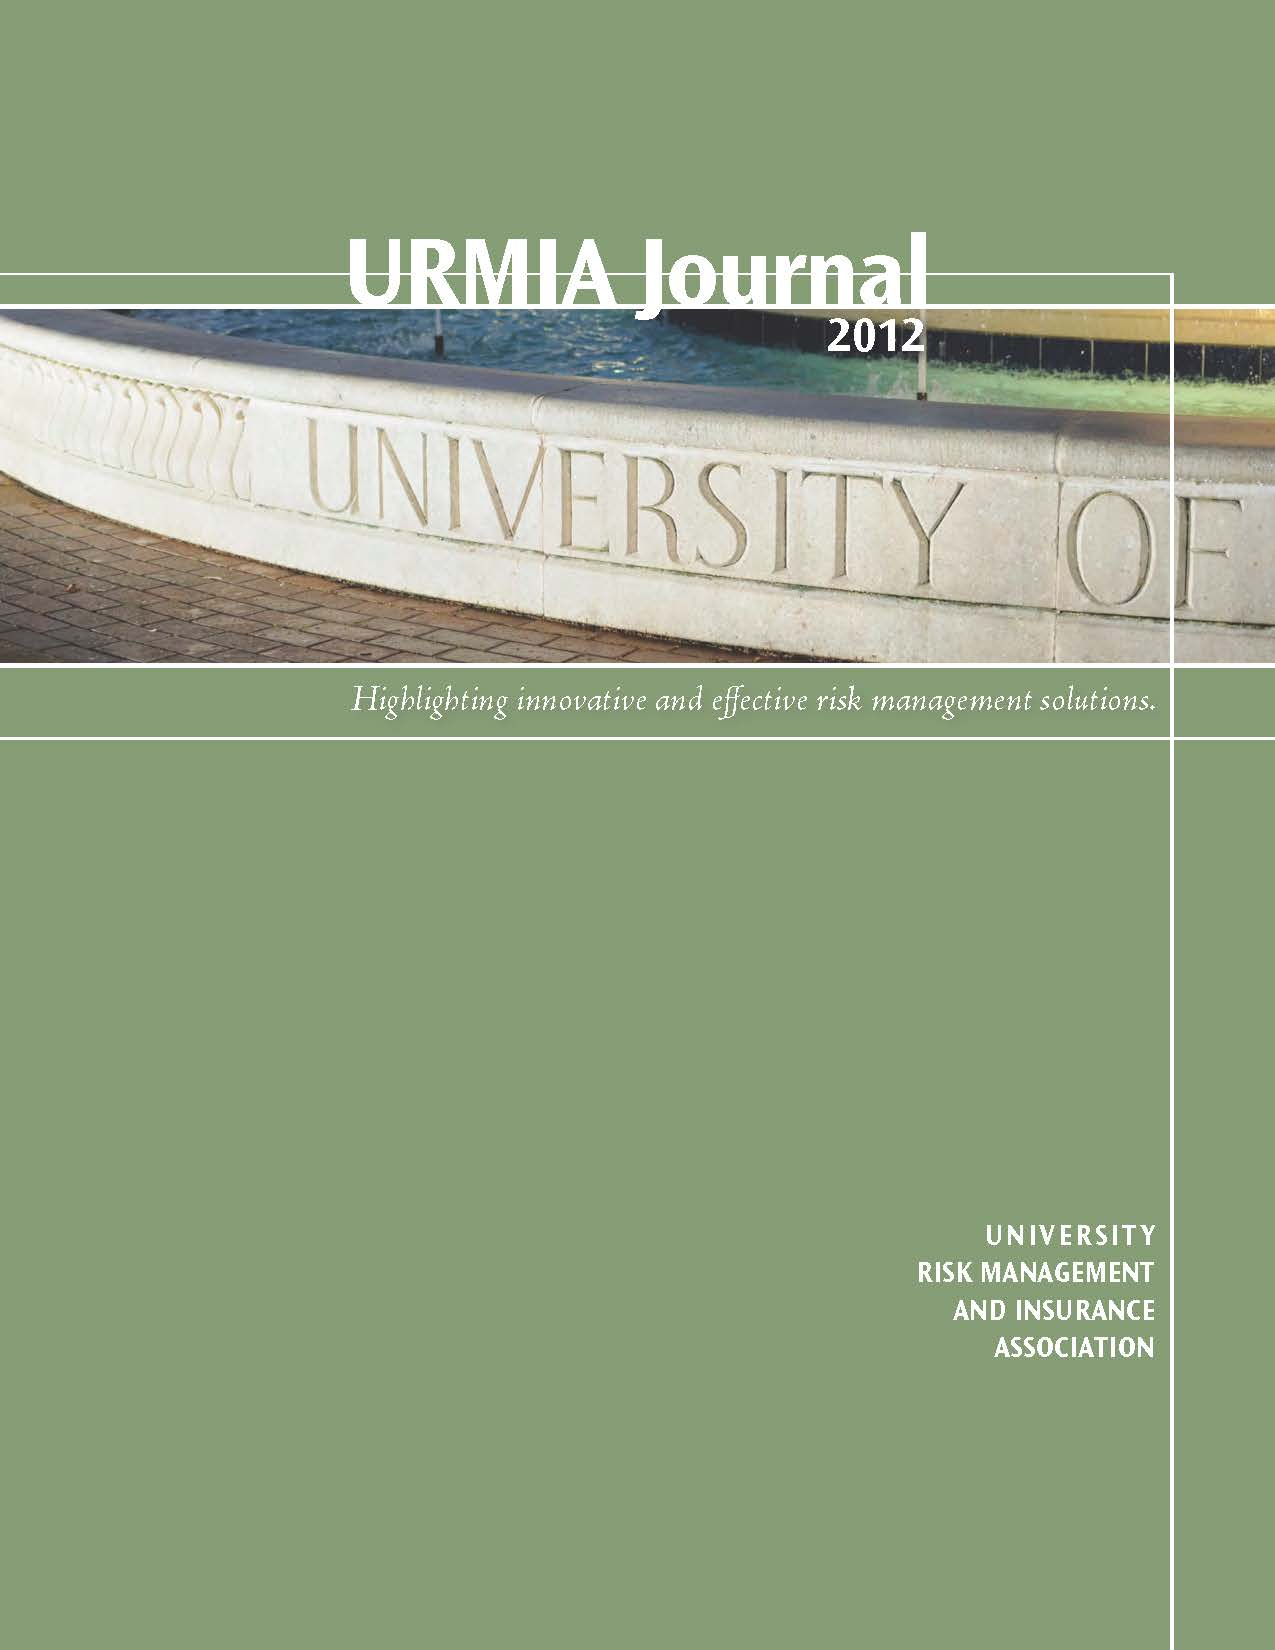 2012 URMIA Journal